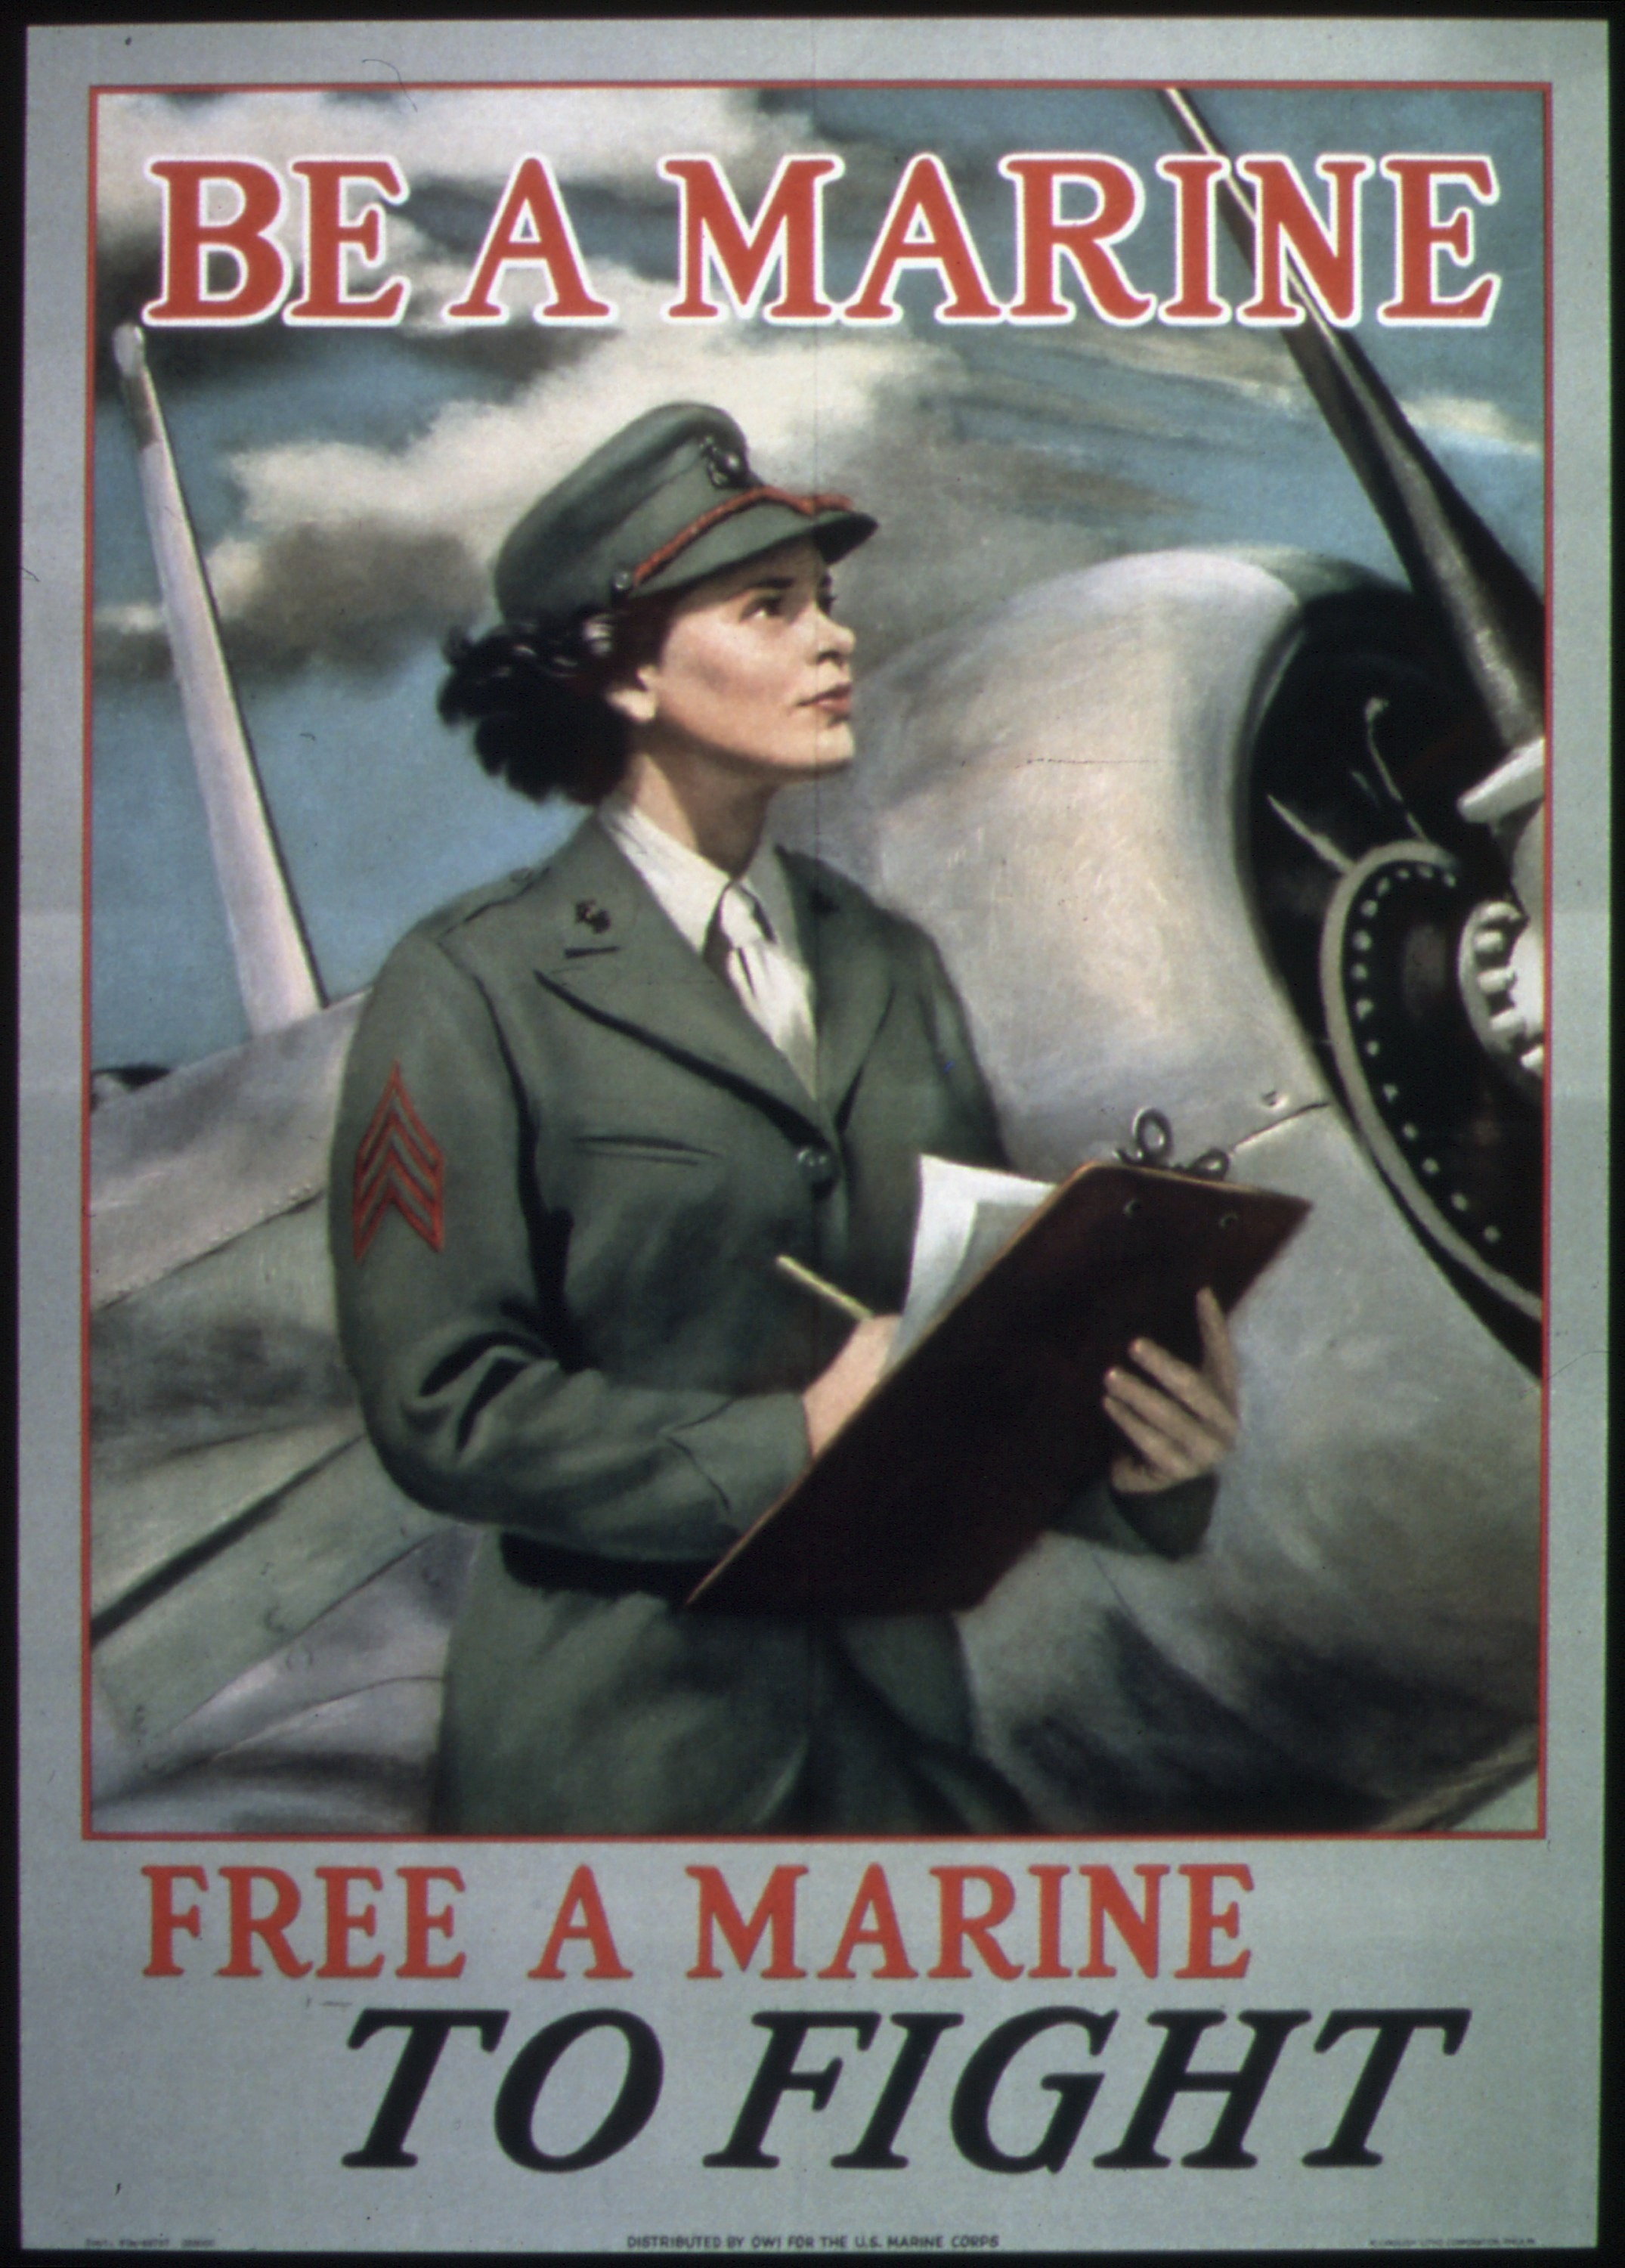 US Marine Corps World War II Want Action Recruitment Poster 1942